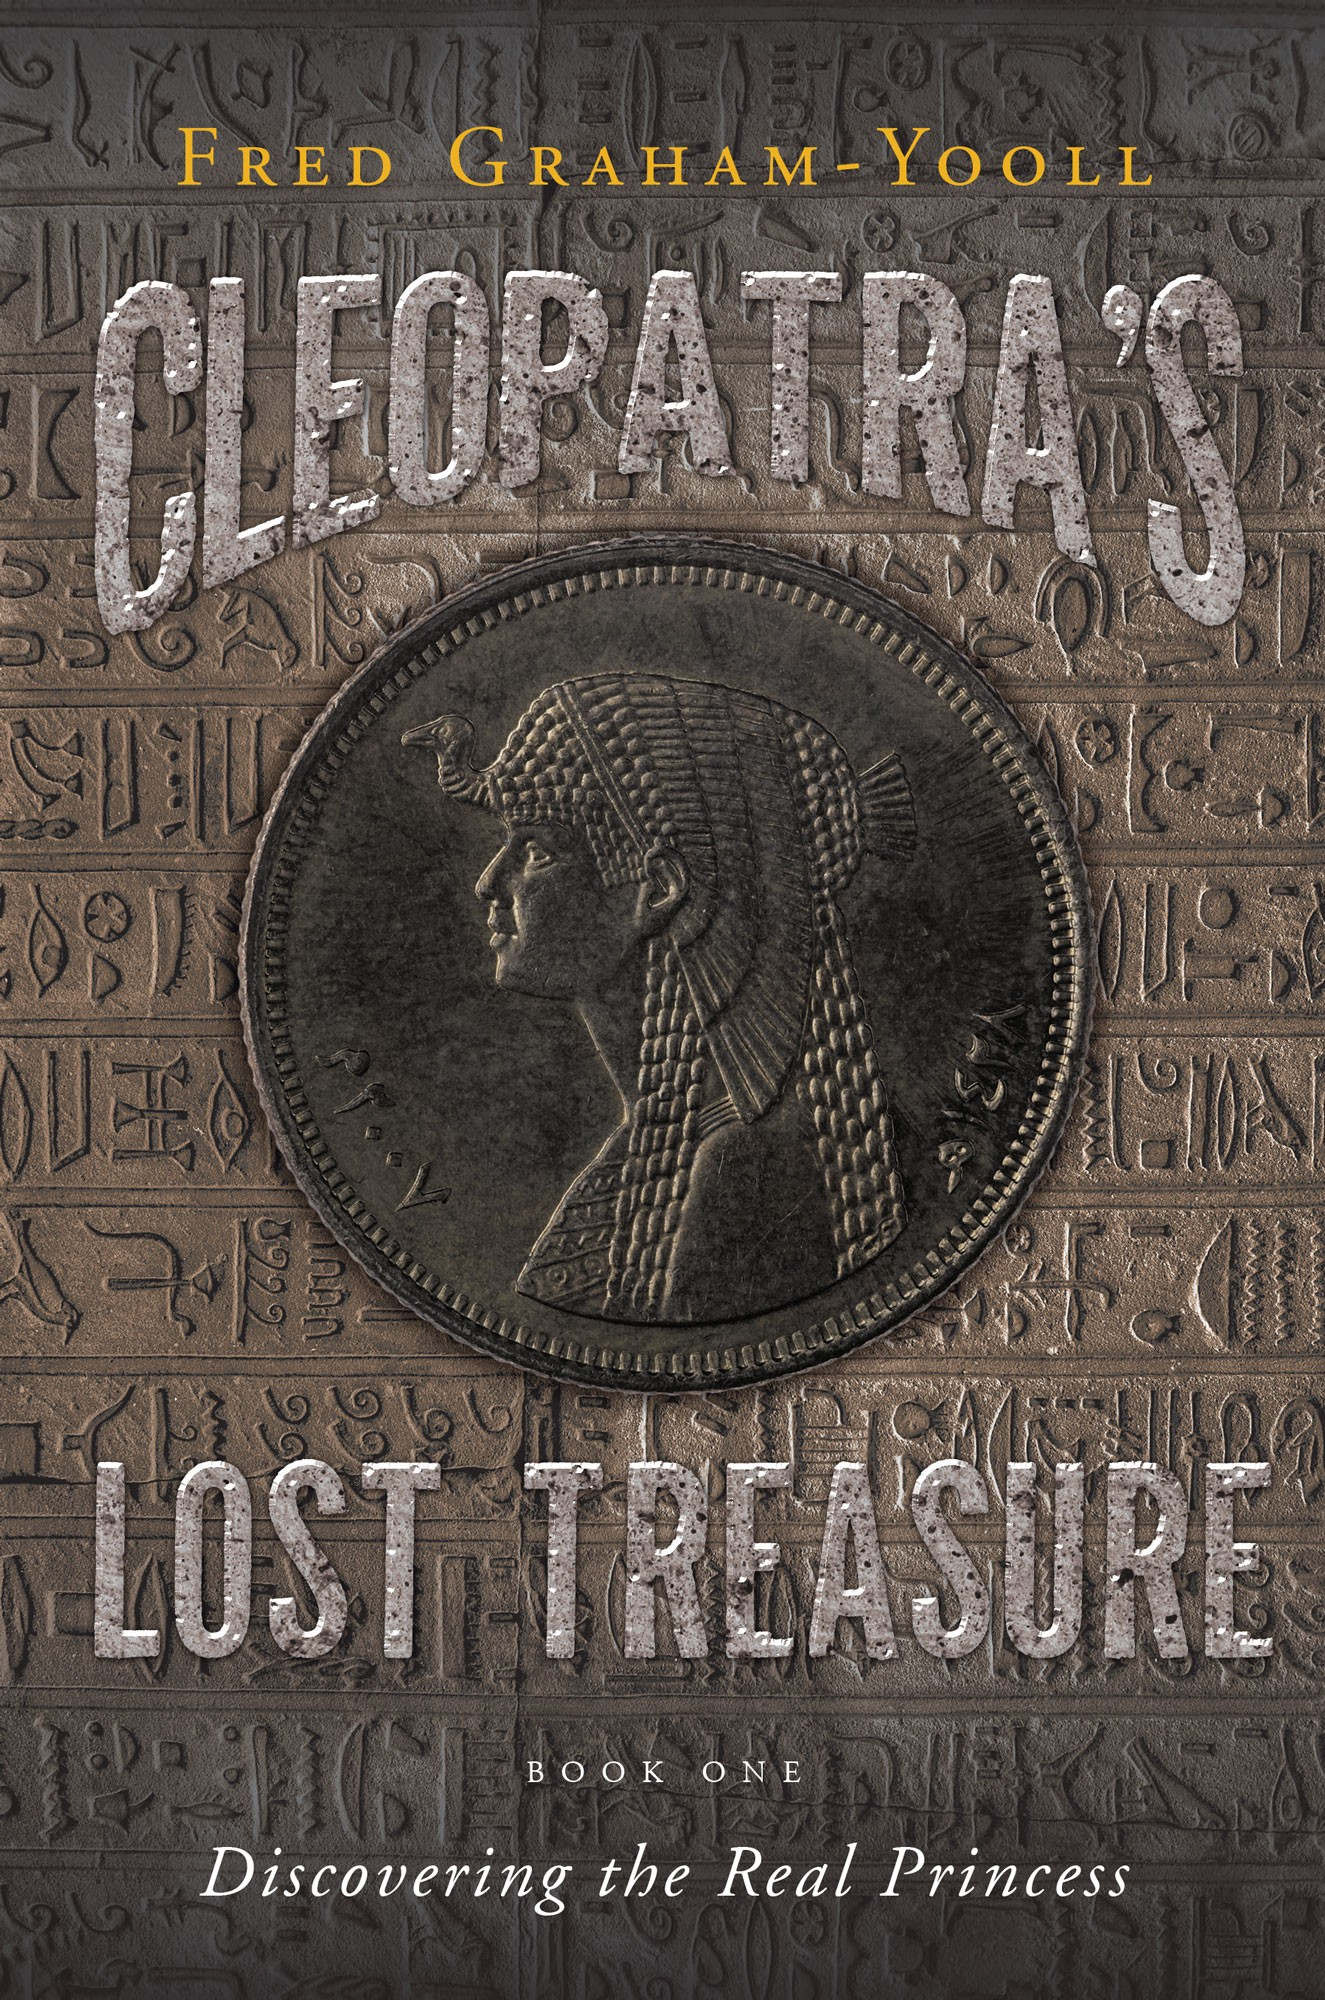 Fred Graham-Yooll – Cleopatra's Lost Treassure